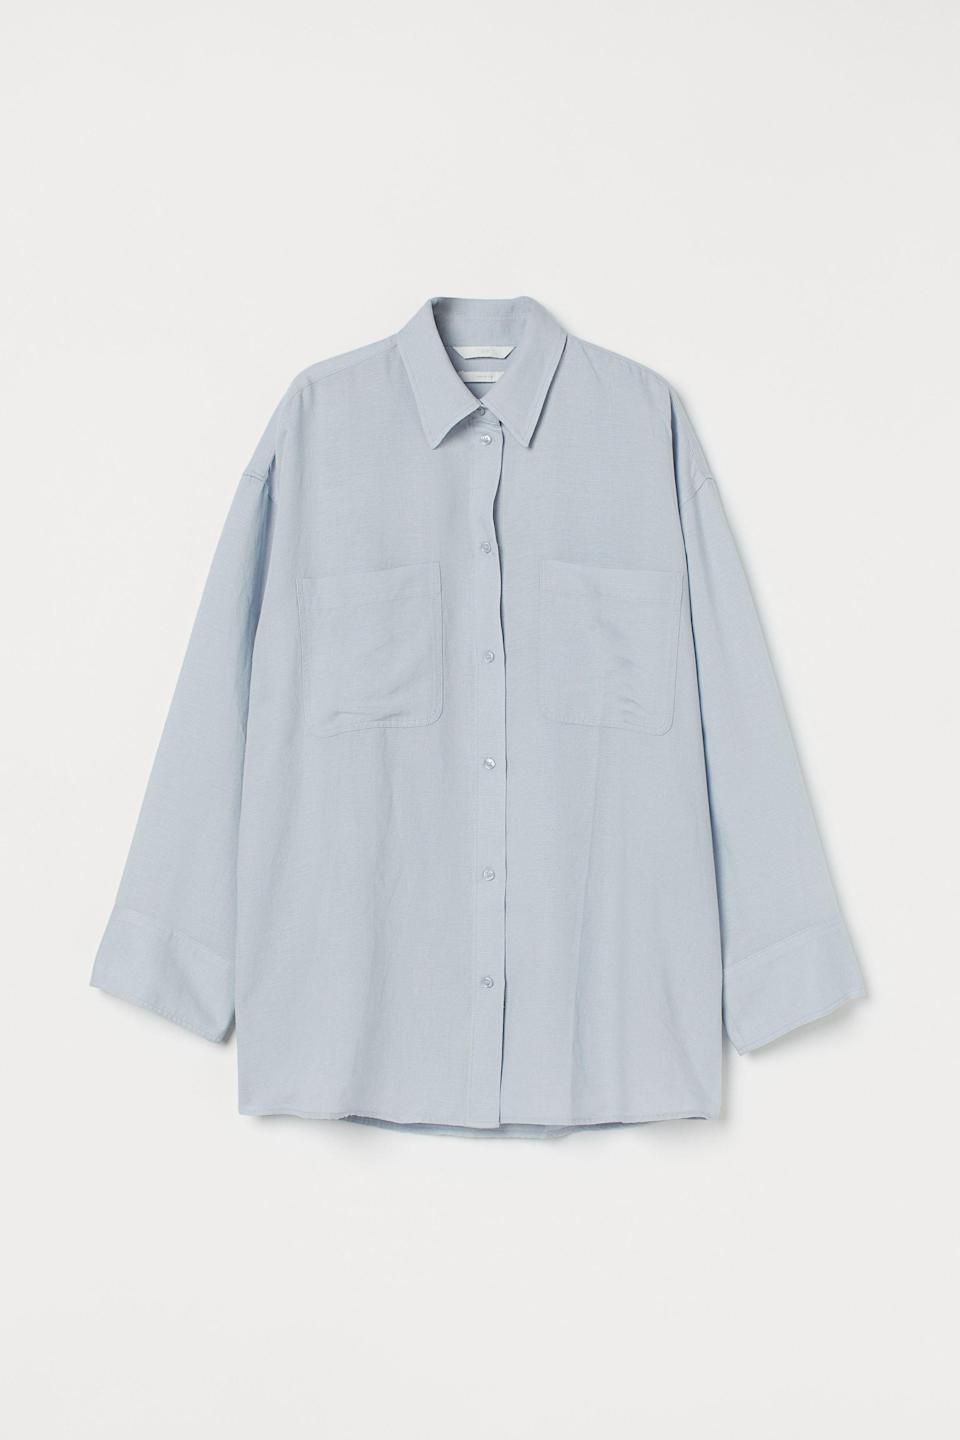 """<p><strong>H&M</strong></p><p>hm.com</p><p><strong>$29.99</strong></p><p><a href=""""https://go.redirectingat.com?id=74968X1596630&url=https%3A%2F%2Fwww2.hm.com%2Fen_us%2Fproductpage.0991823001.html&sref=https%3A%2F%2Fwww.harpersbazaar.com%2Ffashion%2Ftrends%2Fg37184495%2Foversize-button-down-shirts%2F"""" rel=""""nofollow noopener"""" target=""""_blank"""" data-ylk=""""slk:Shop Now"""" class=""""link rapid-noclick-resp"""">Shop Now</a></p><p>A oversized fit so nice, we fully support buying it twice.</p>"""